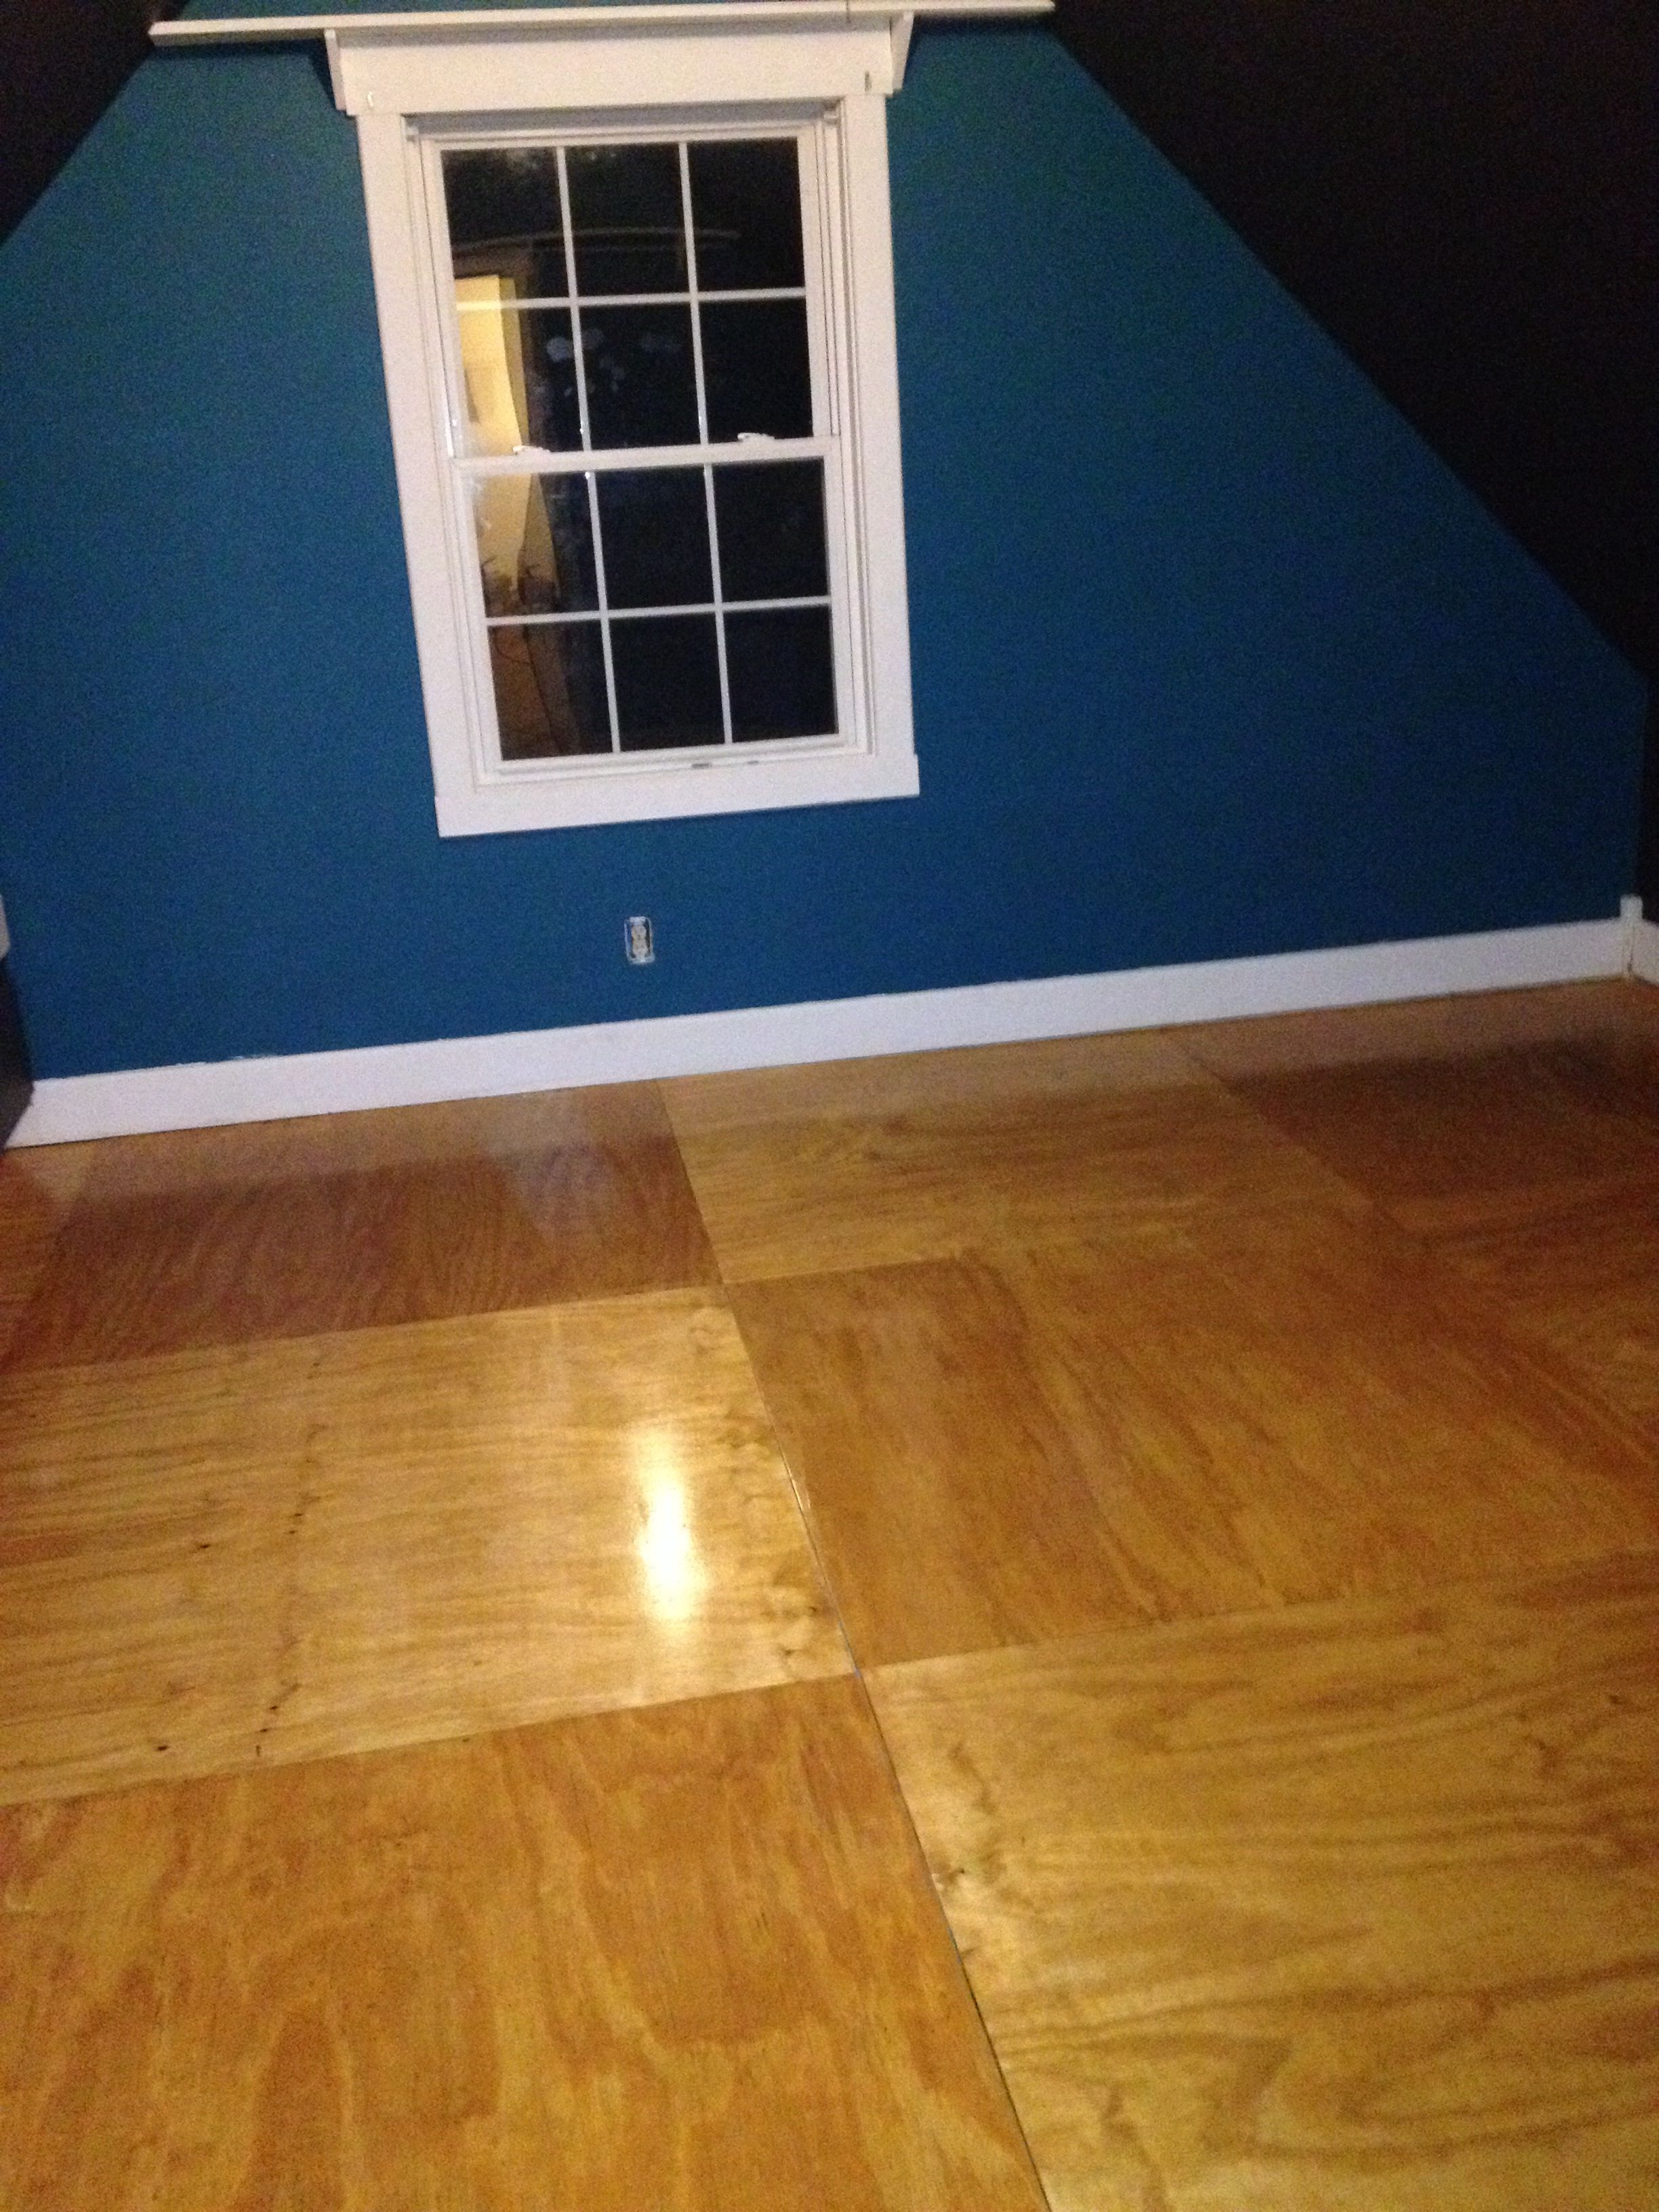 Isaiah S Room Finished Plywood Flooring 15x15 With Total